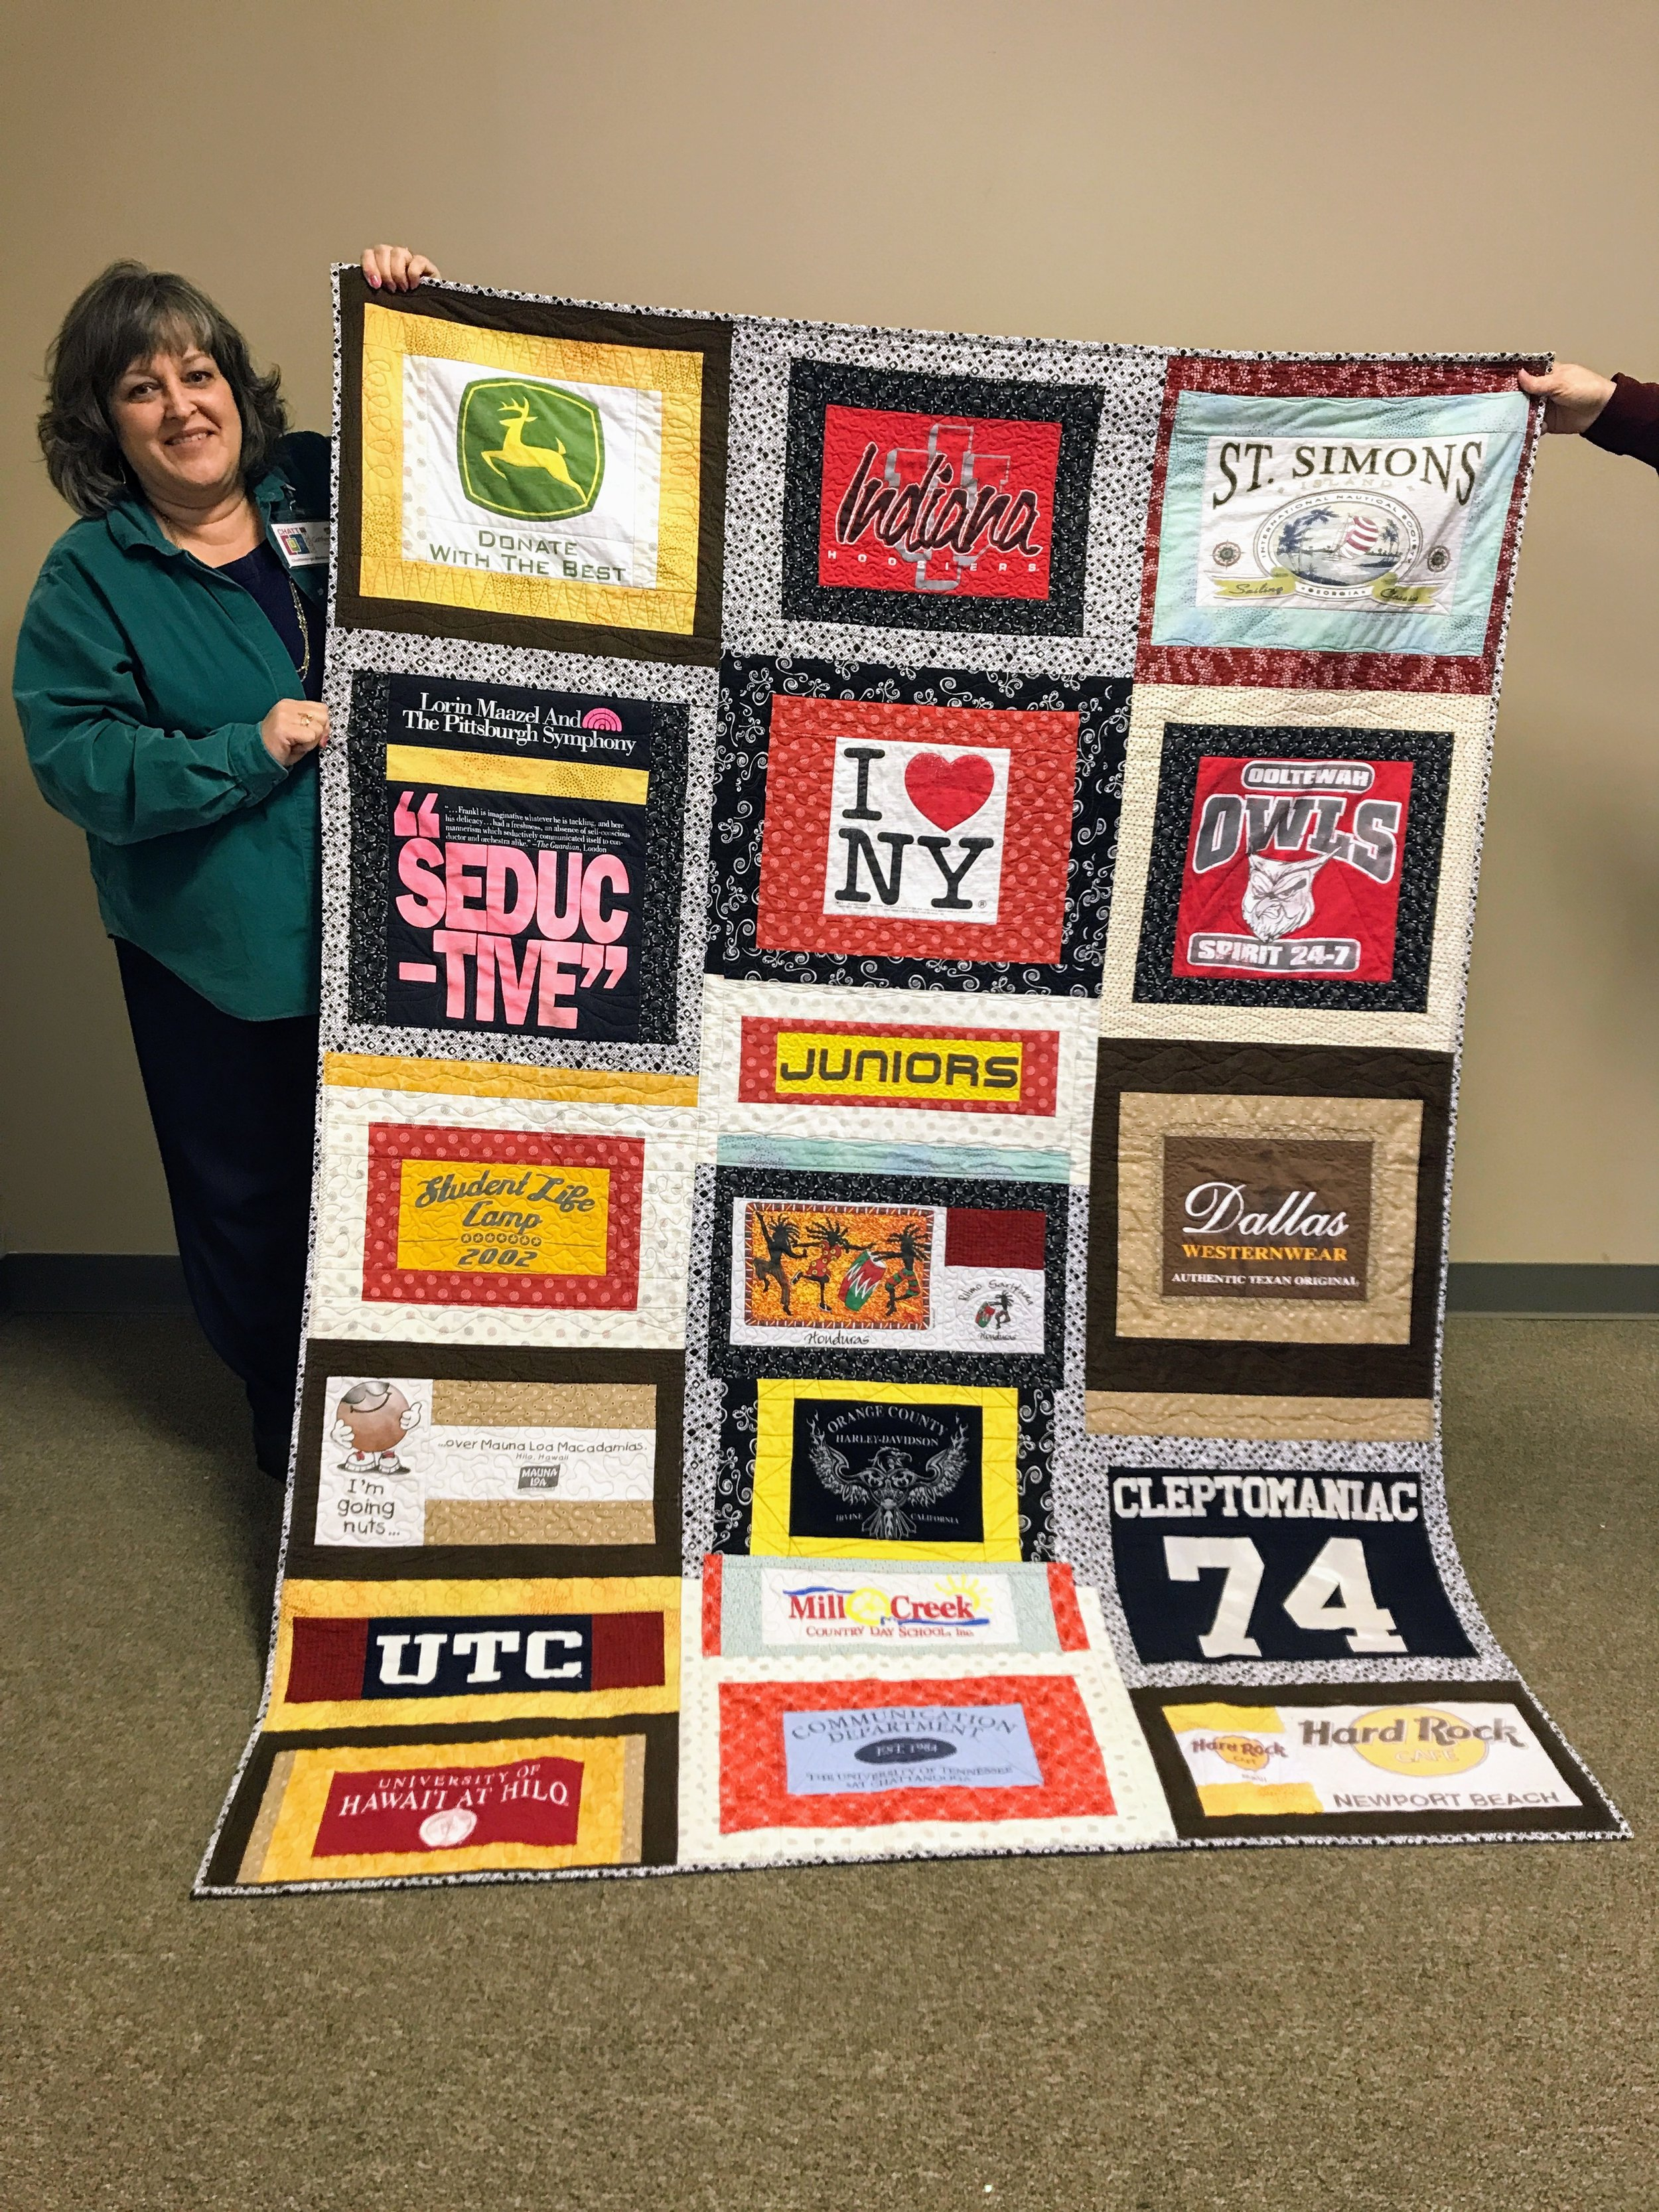 Catherine made this t-shirt quilt for her daughter